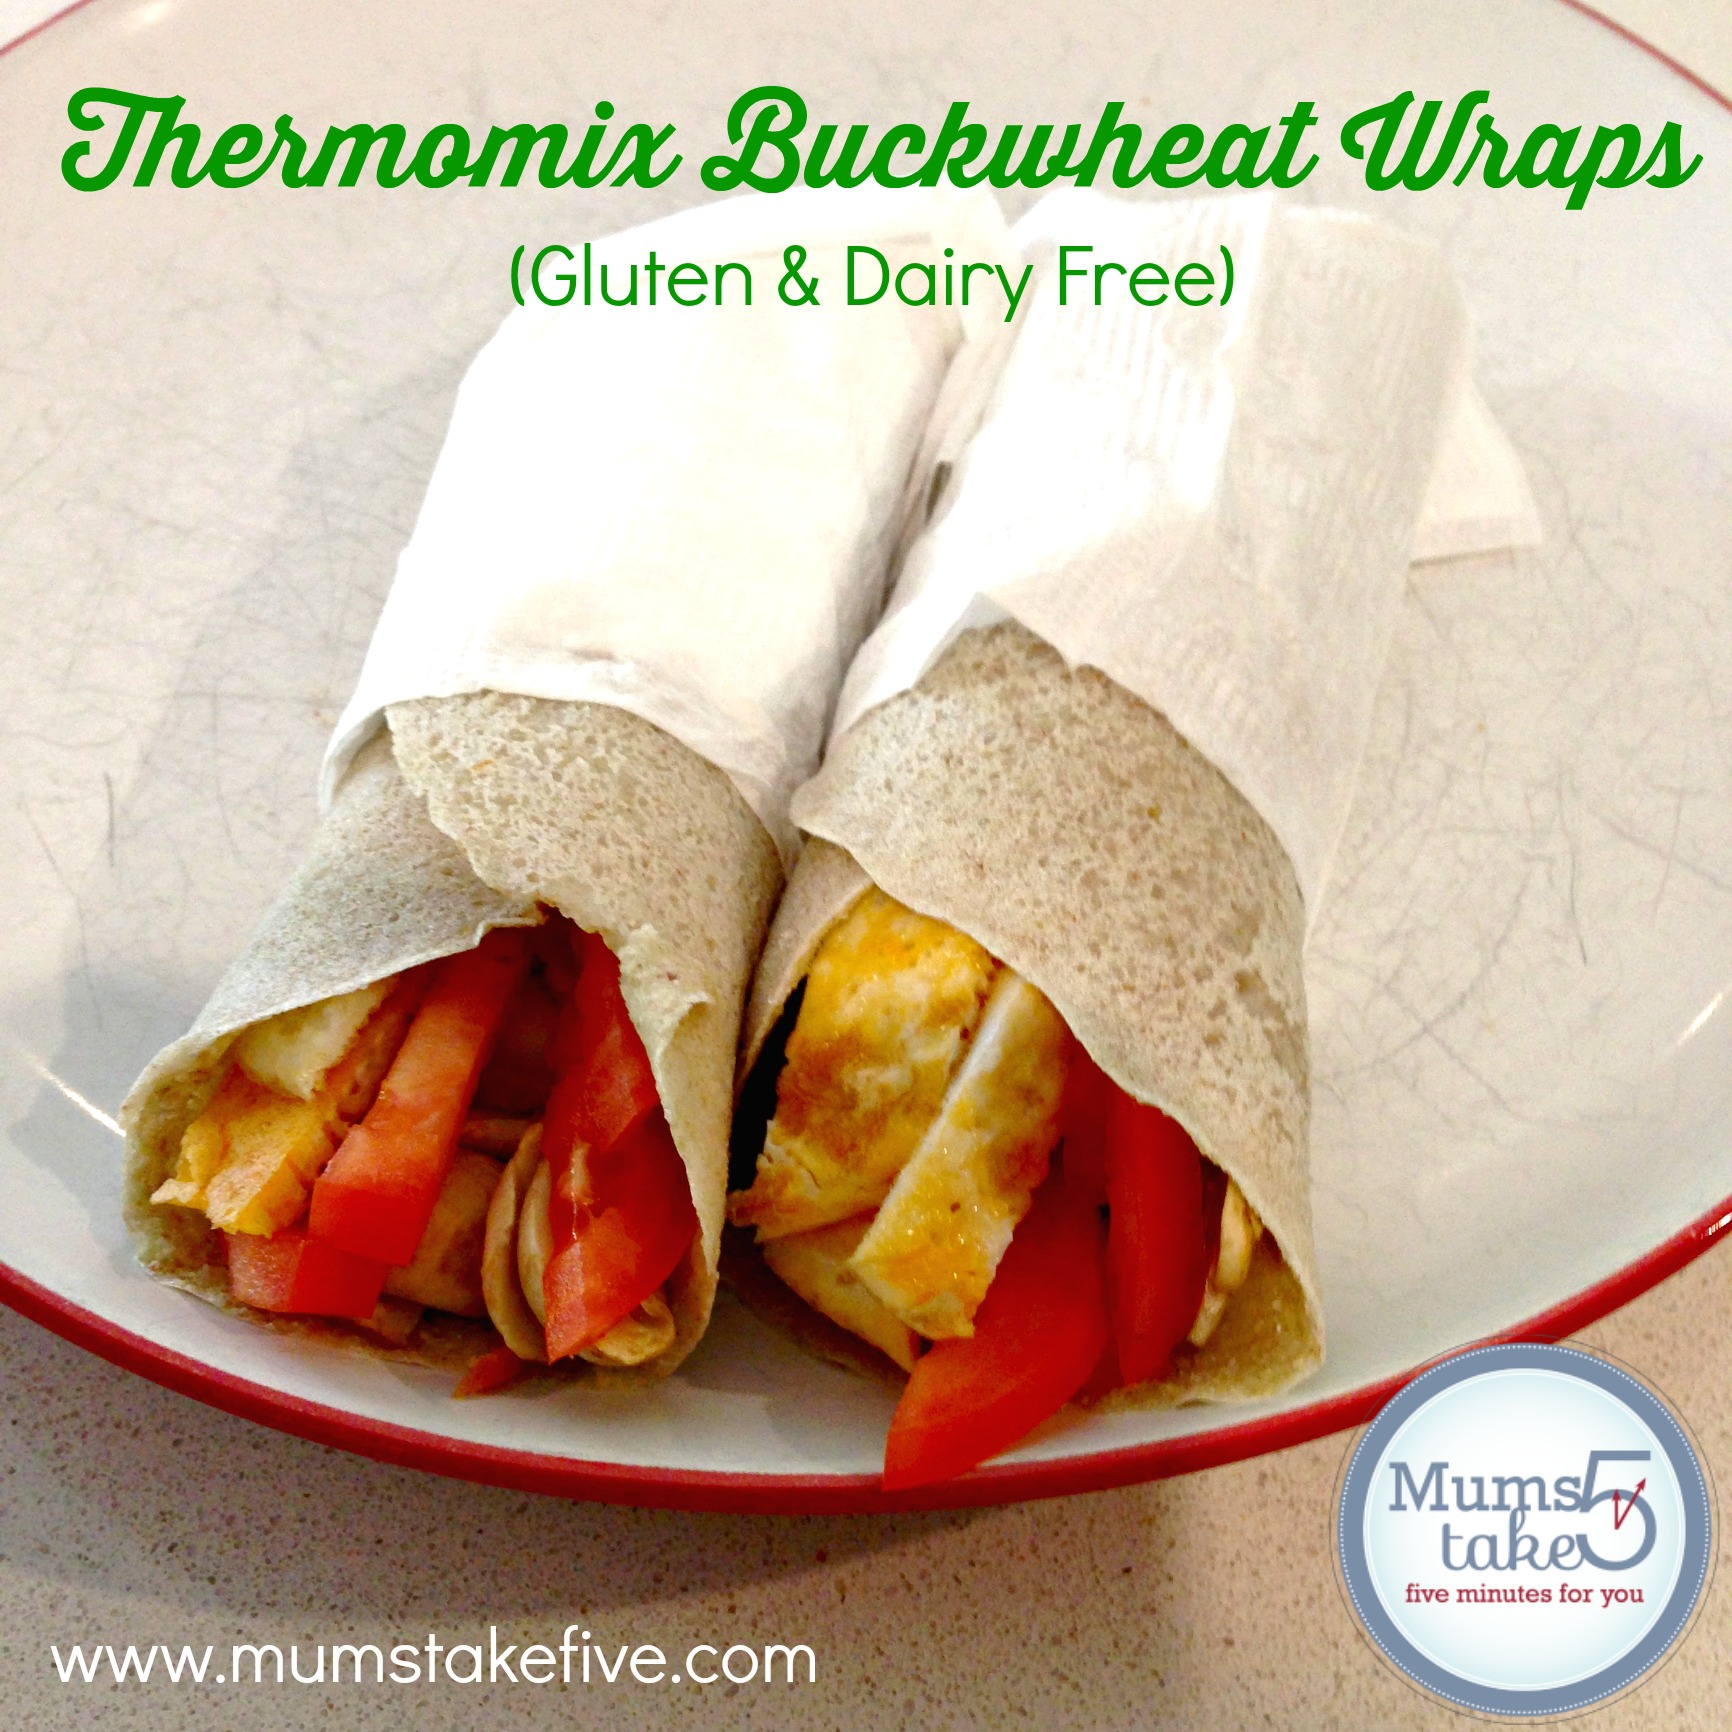 Thermomix Dairy and Gluten Free Wraps